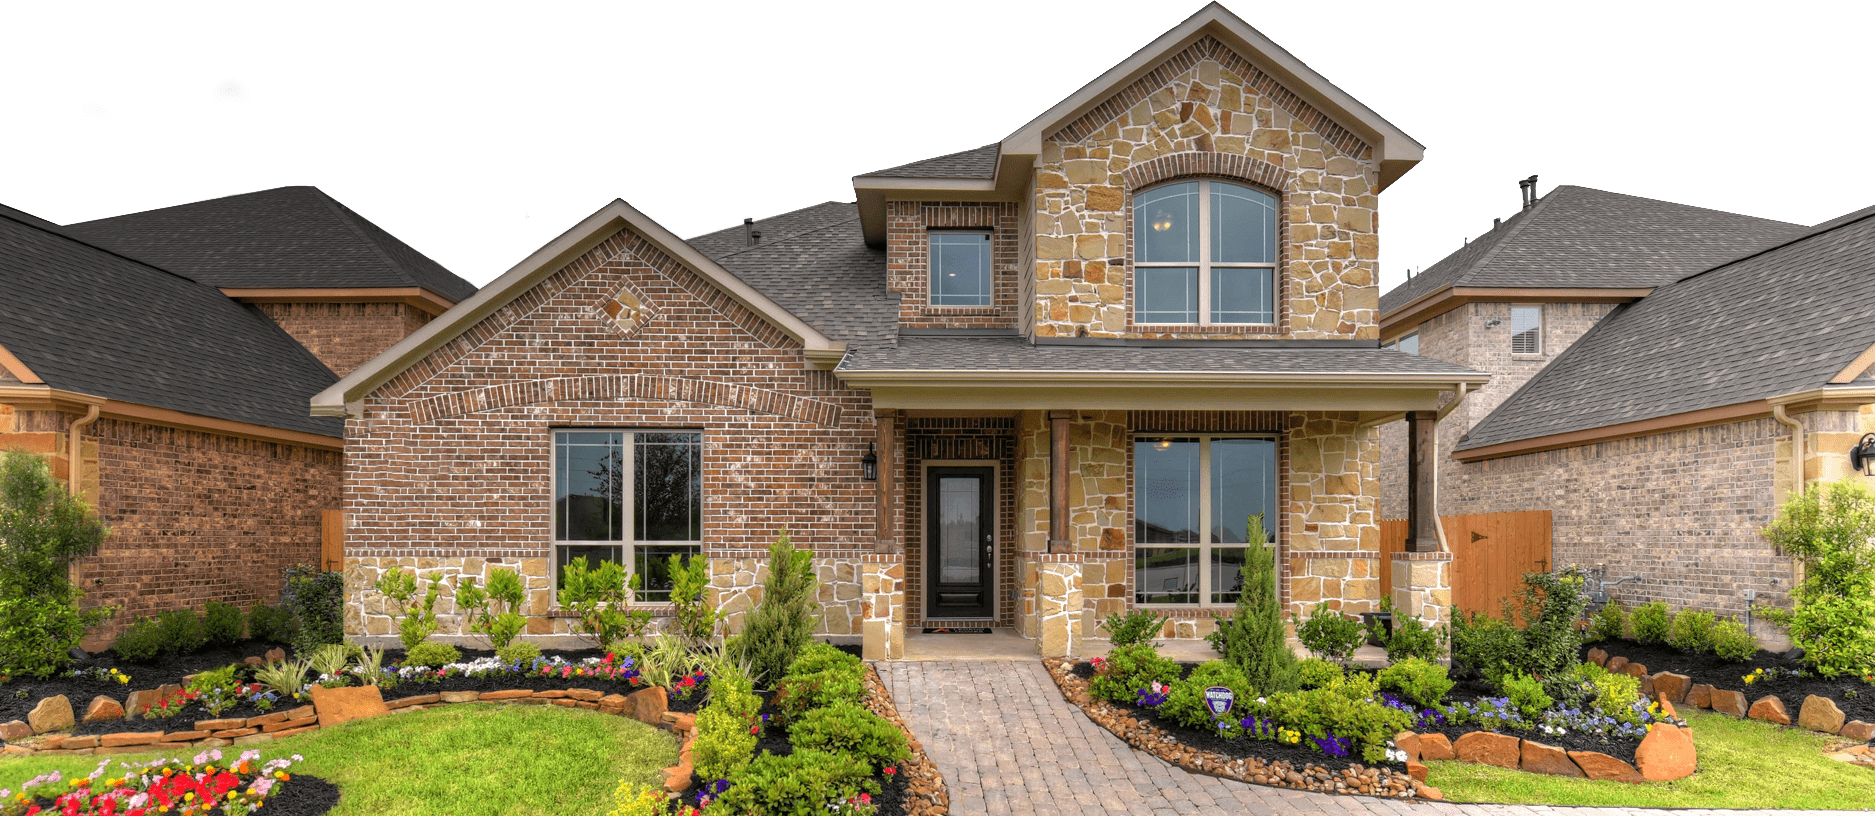 New house png. Affordable homes in houston